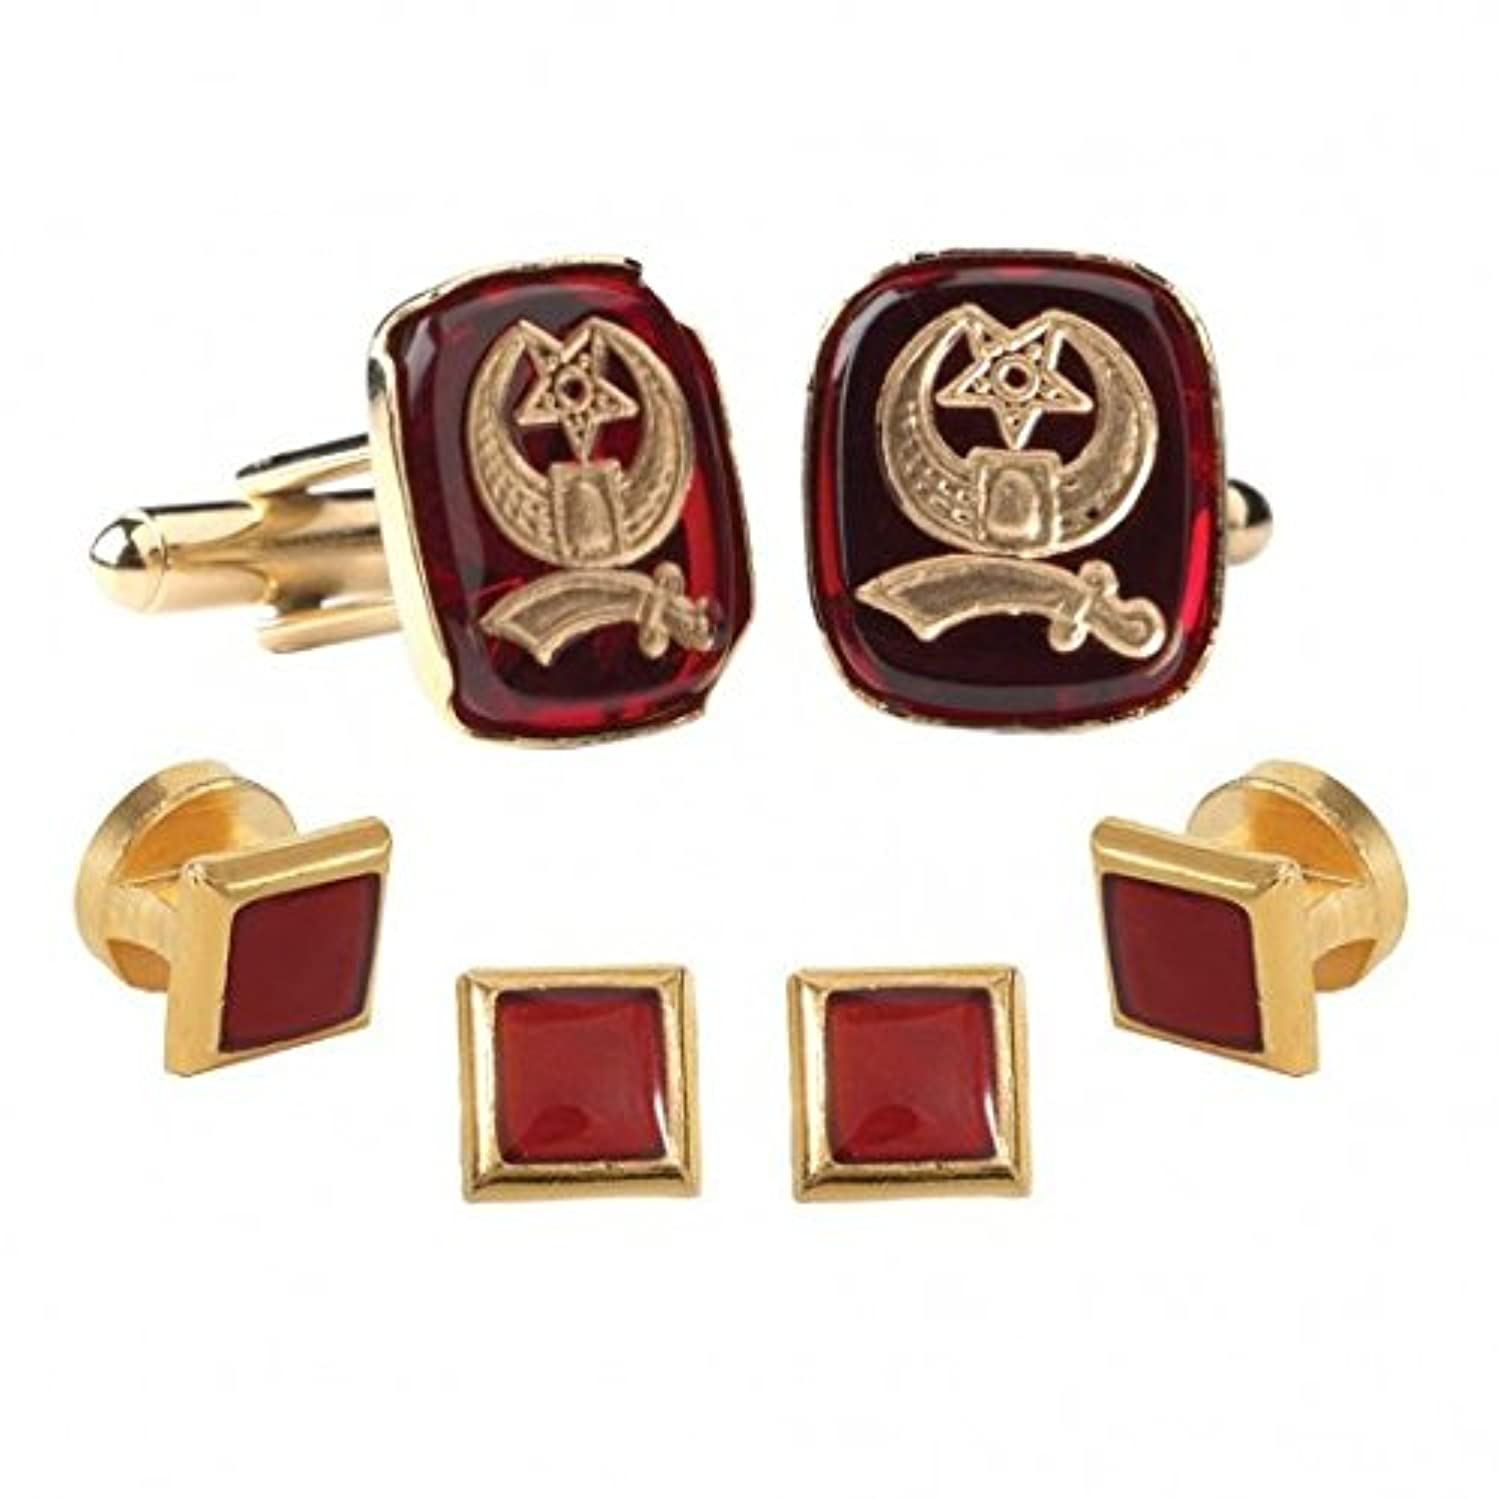 Shriner Insignia Inlay Ruby withゴールドトリムStuds and cufflinks